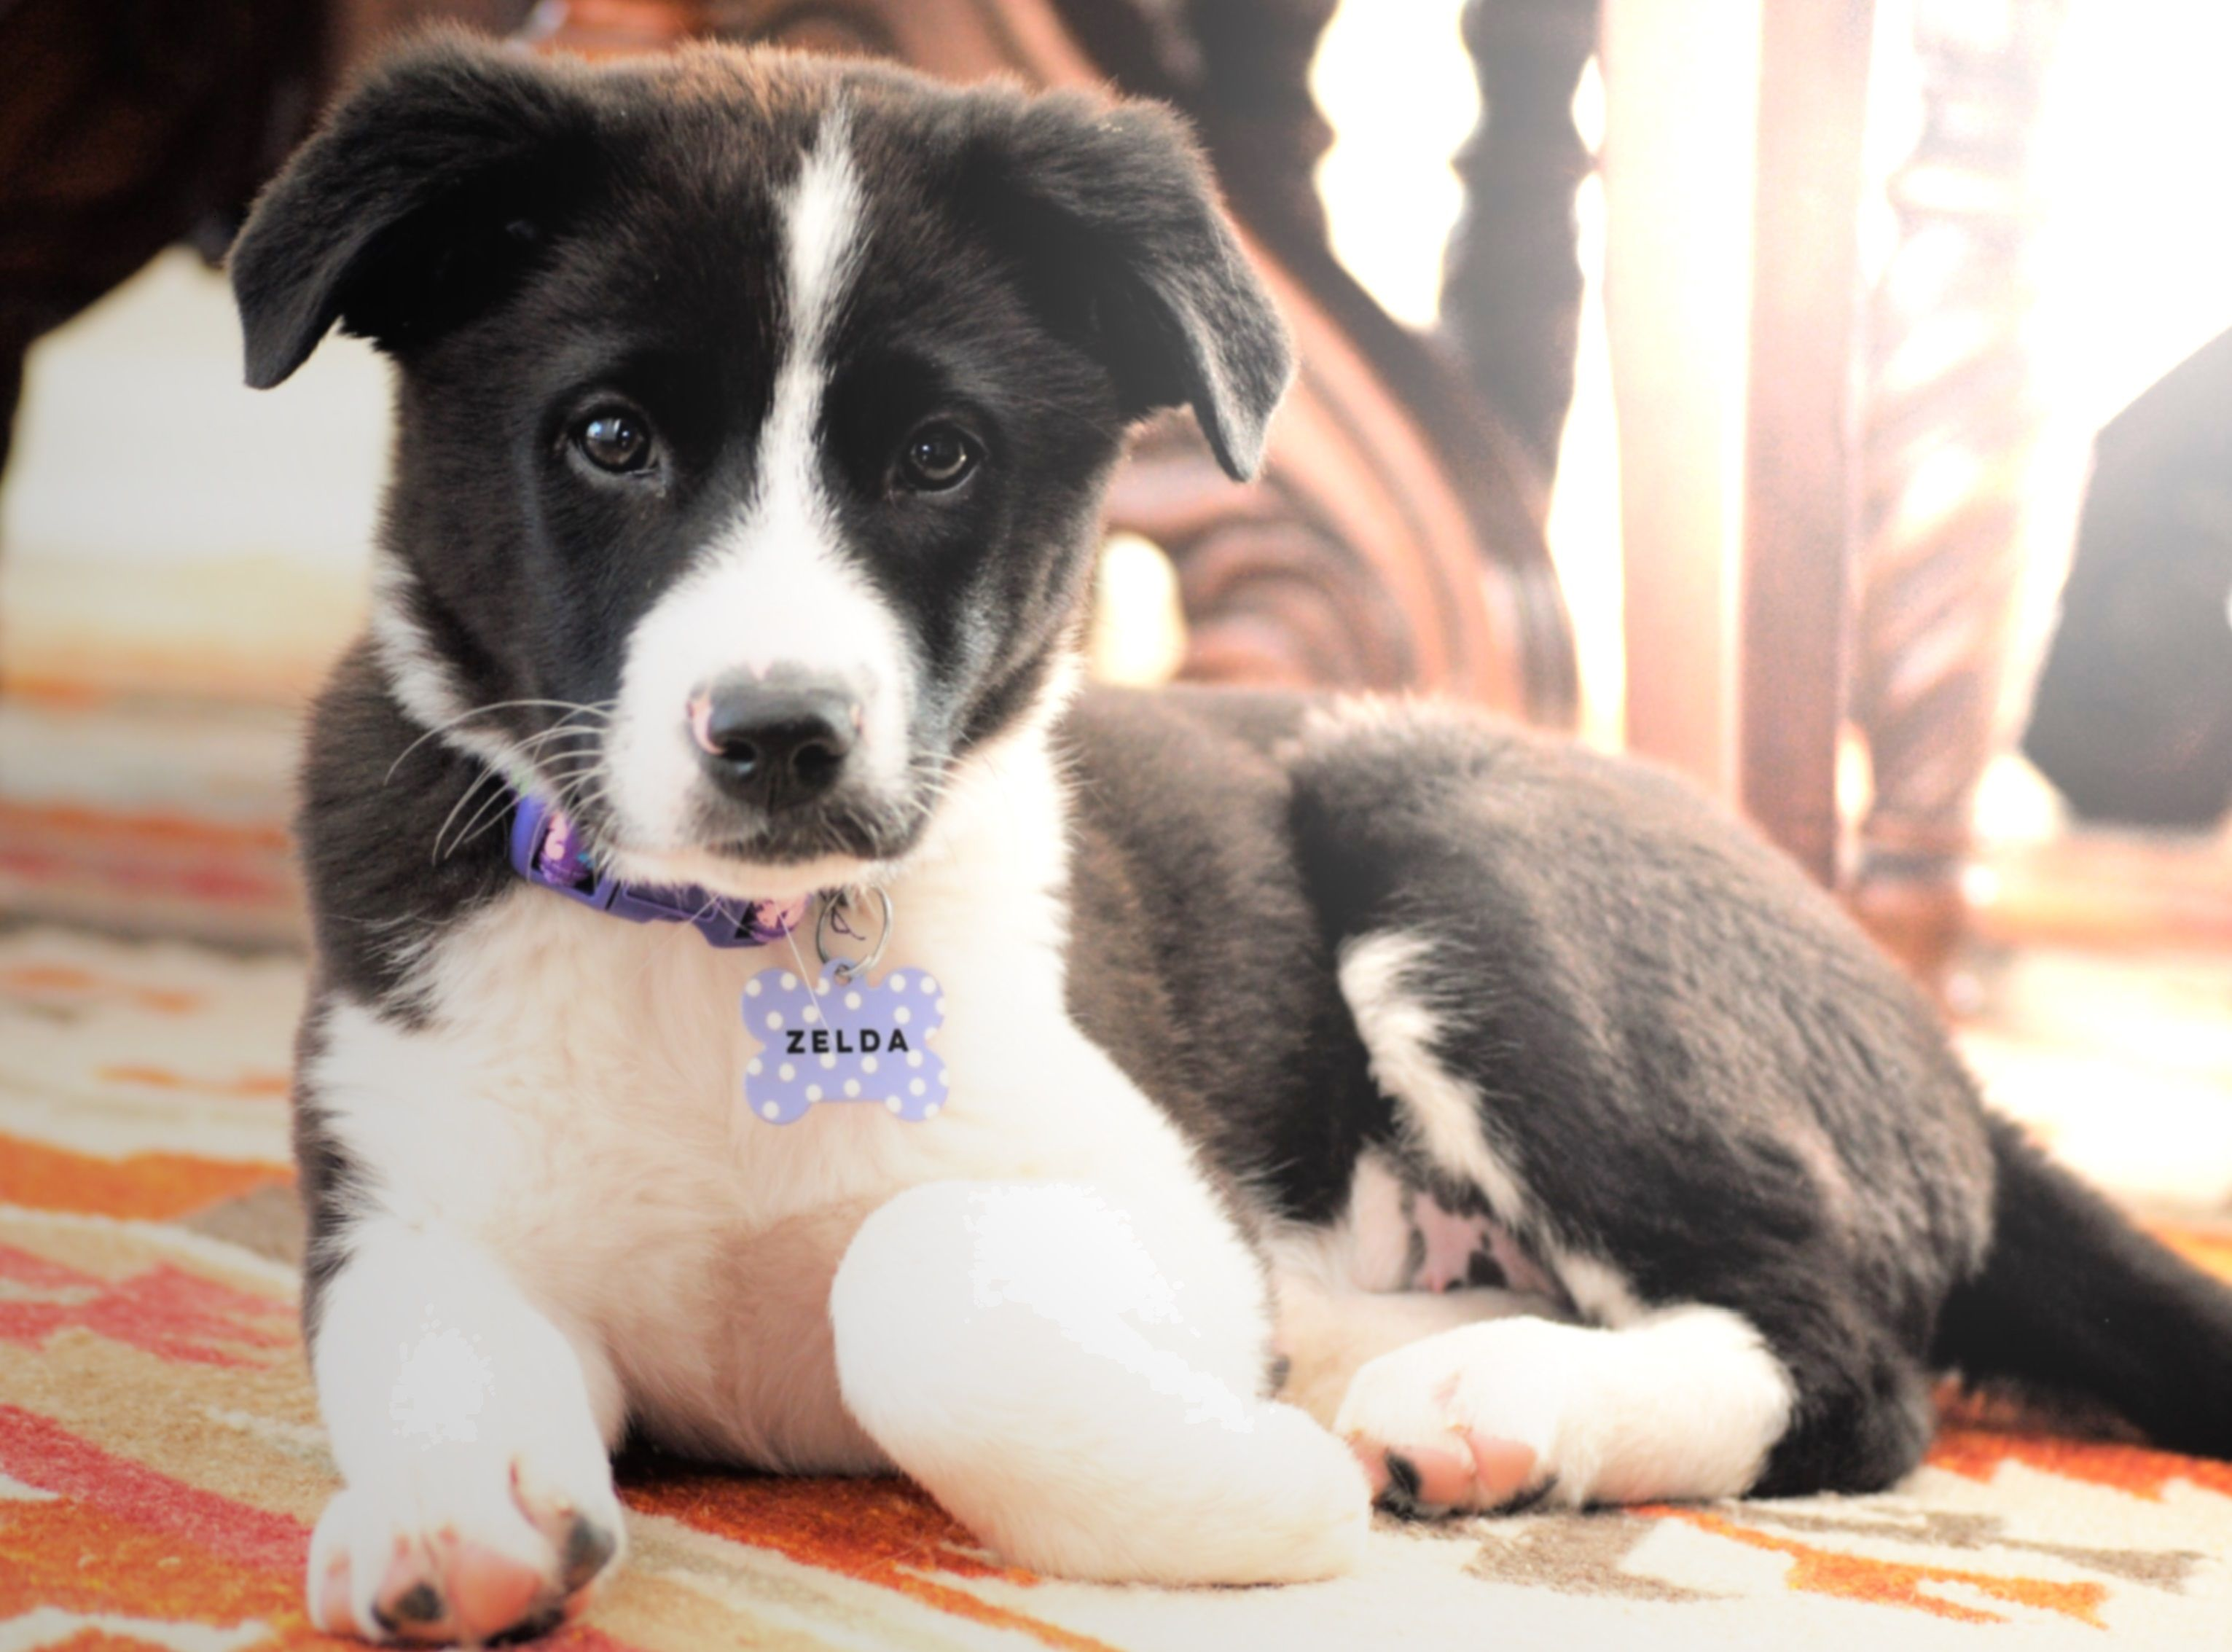 Zelda The Border Collie Boxer German Shepherd Lab Mix Puppy Lab Mix Puppies New Puppy Puppies